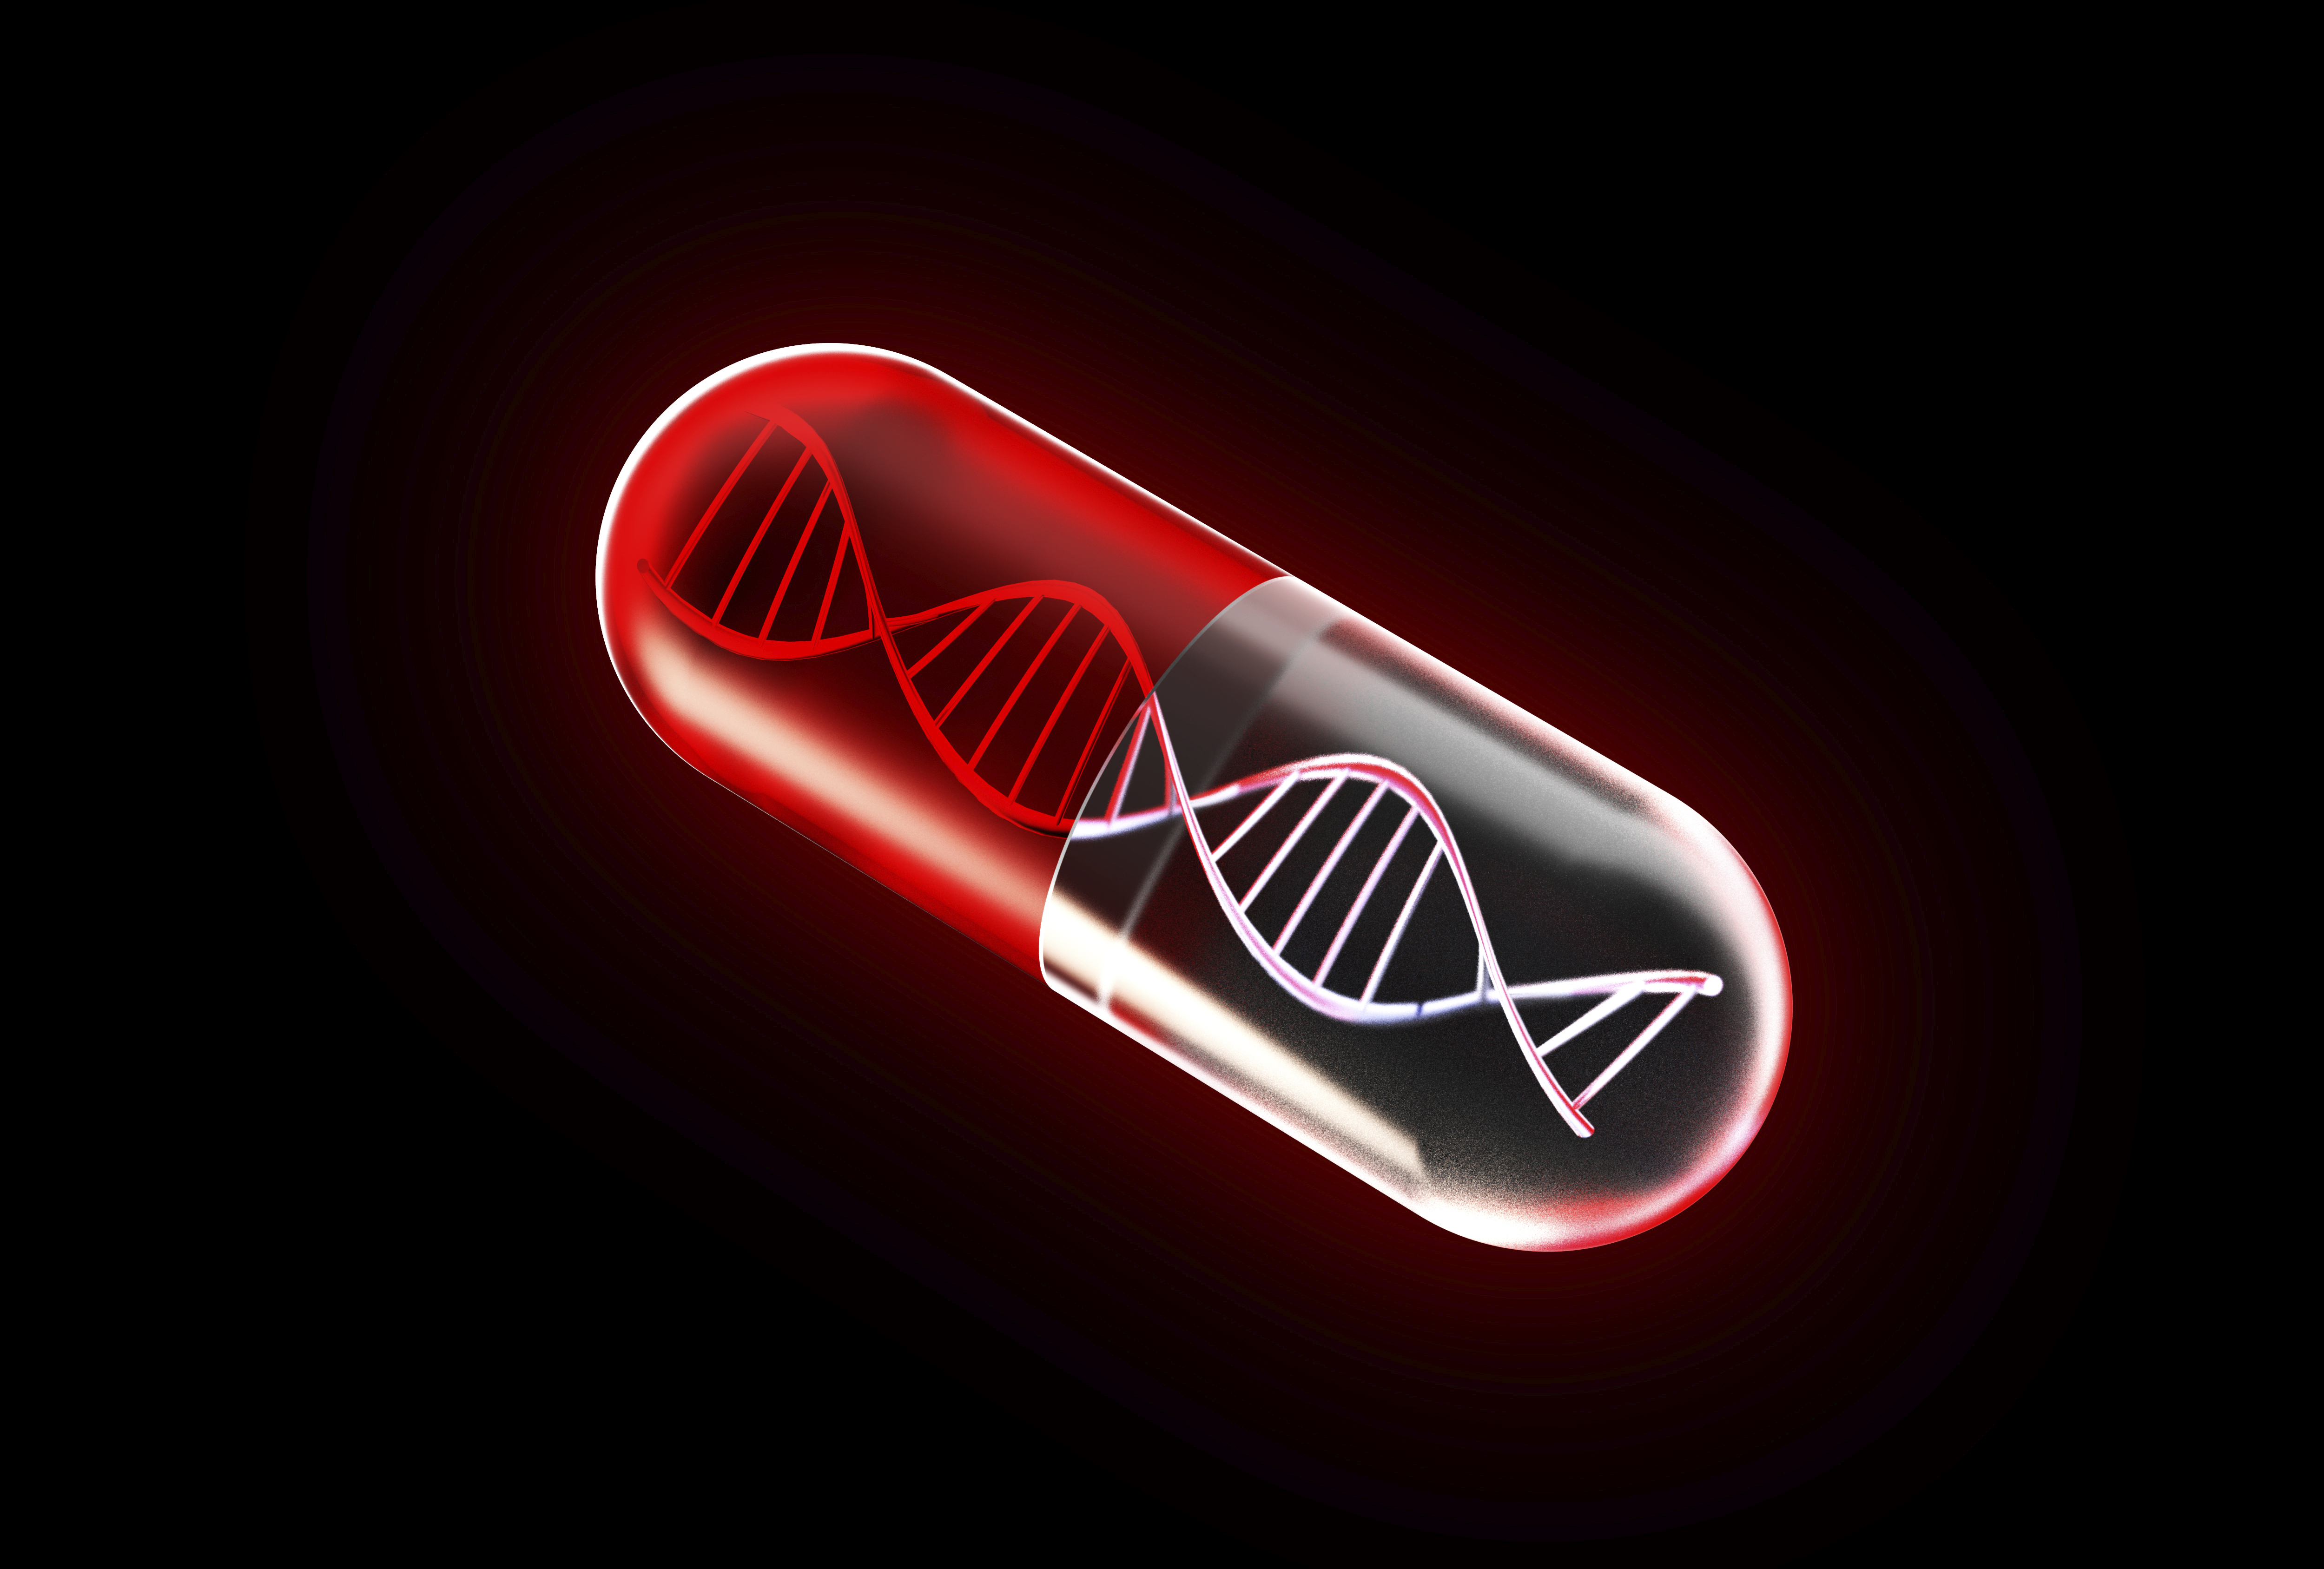 A picture of a medicine capsule containing DNA